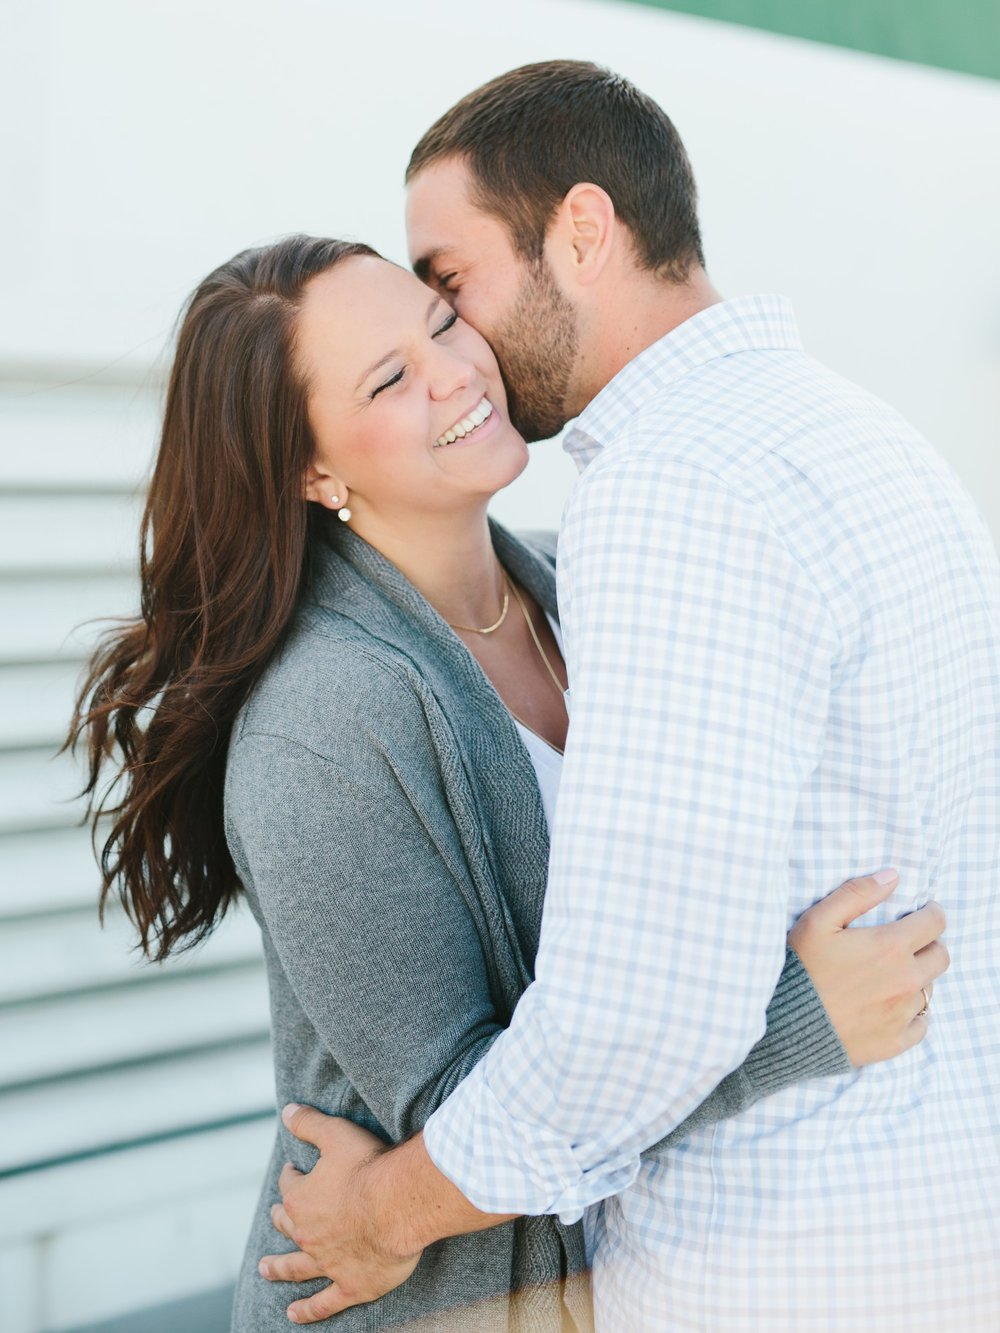 cameron-zegers-photography-engagement-seattle_0006.jpg